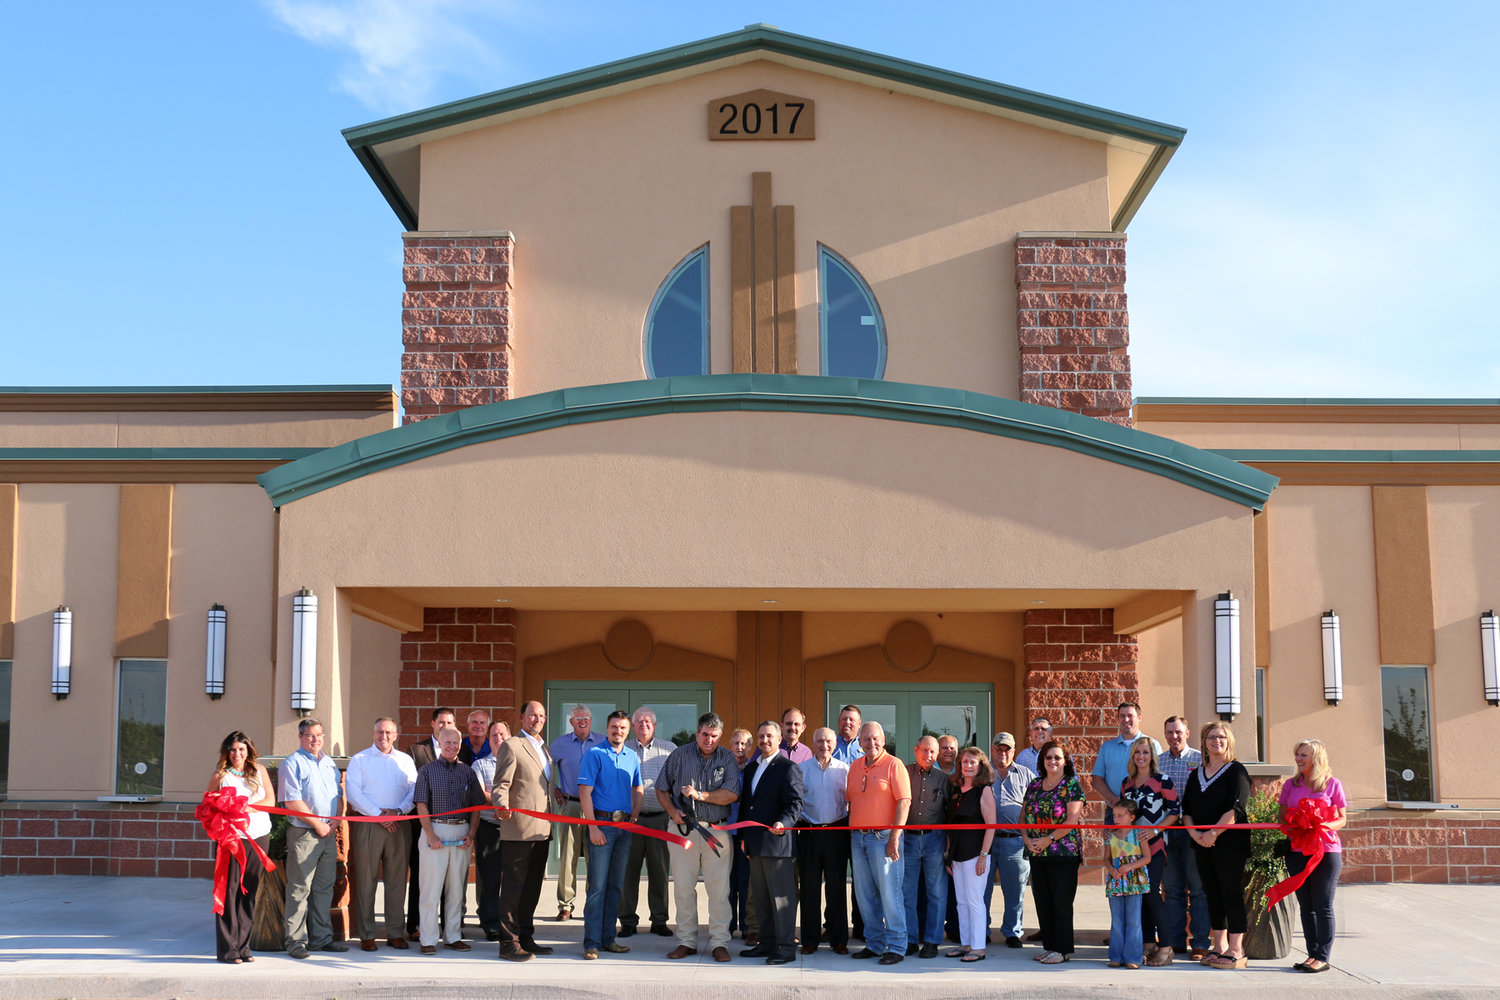 Oklahoma's Grady County Board to open with Hindu prayers 1st time on April 30